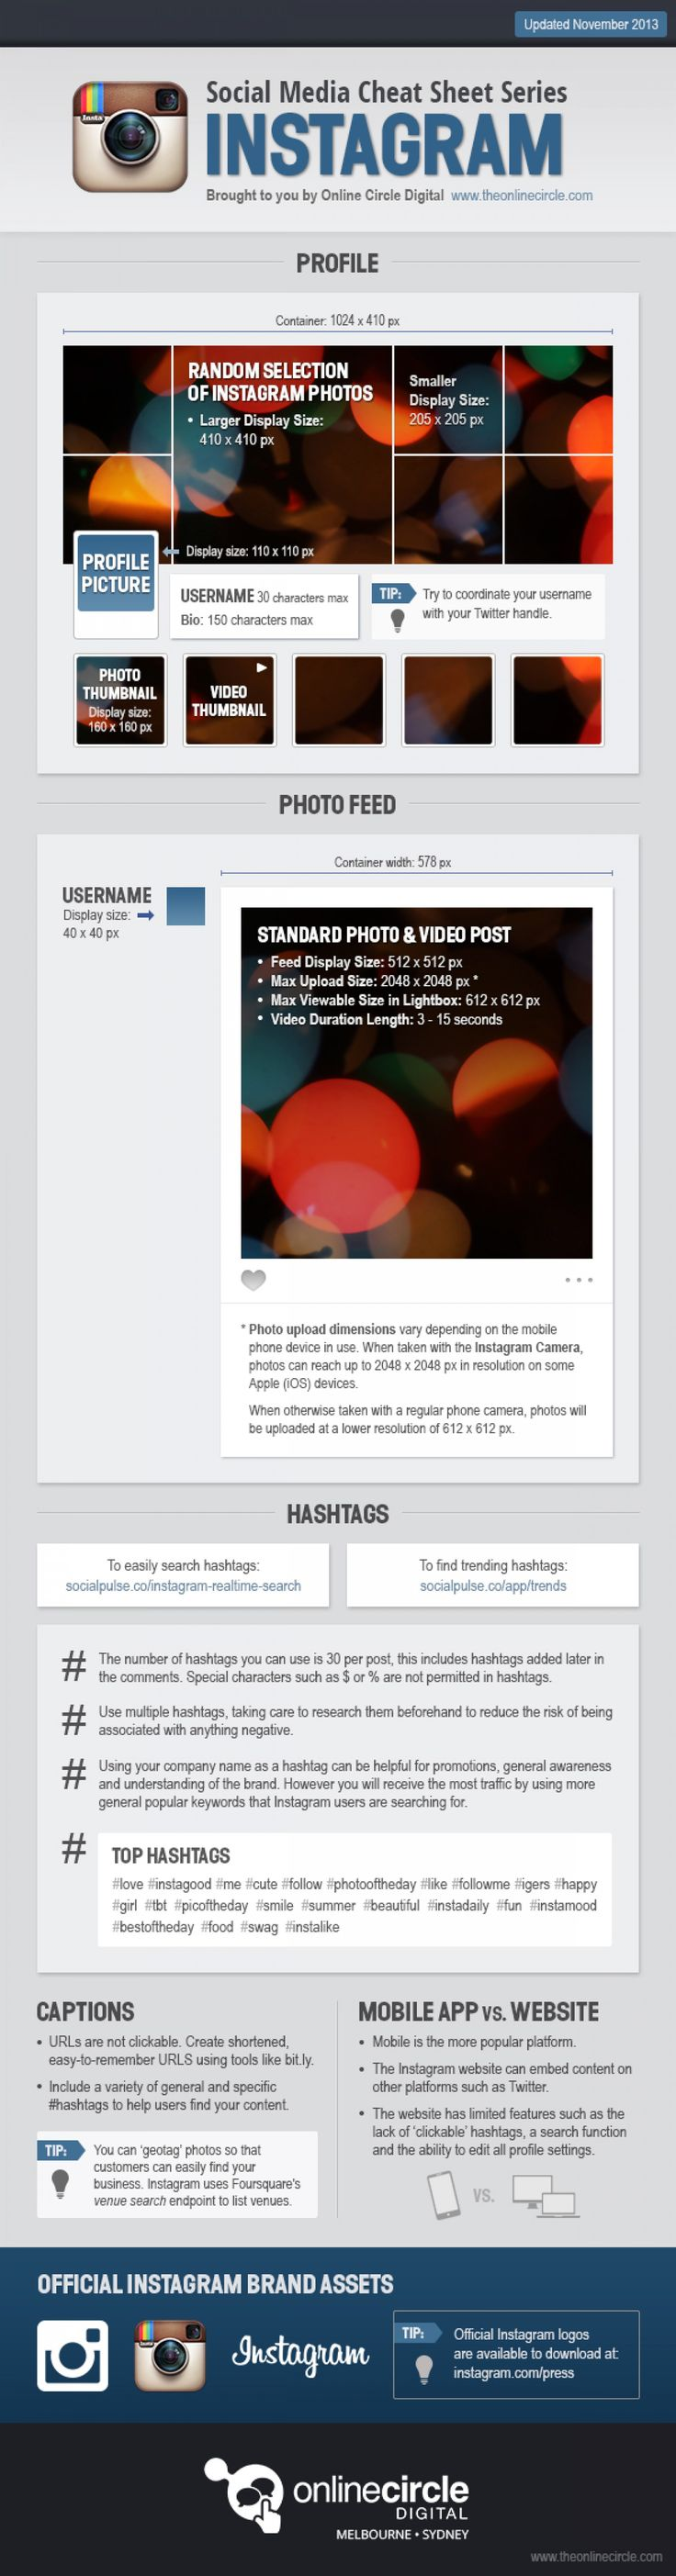 39 best Image Sizes Cheat Board images on Pinterest | Digital ...